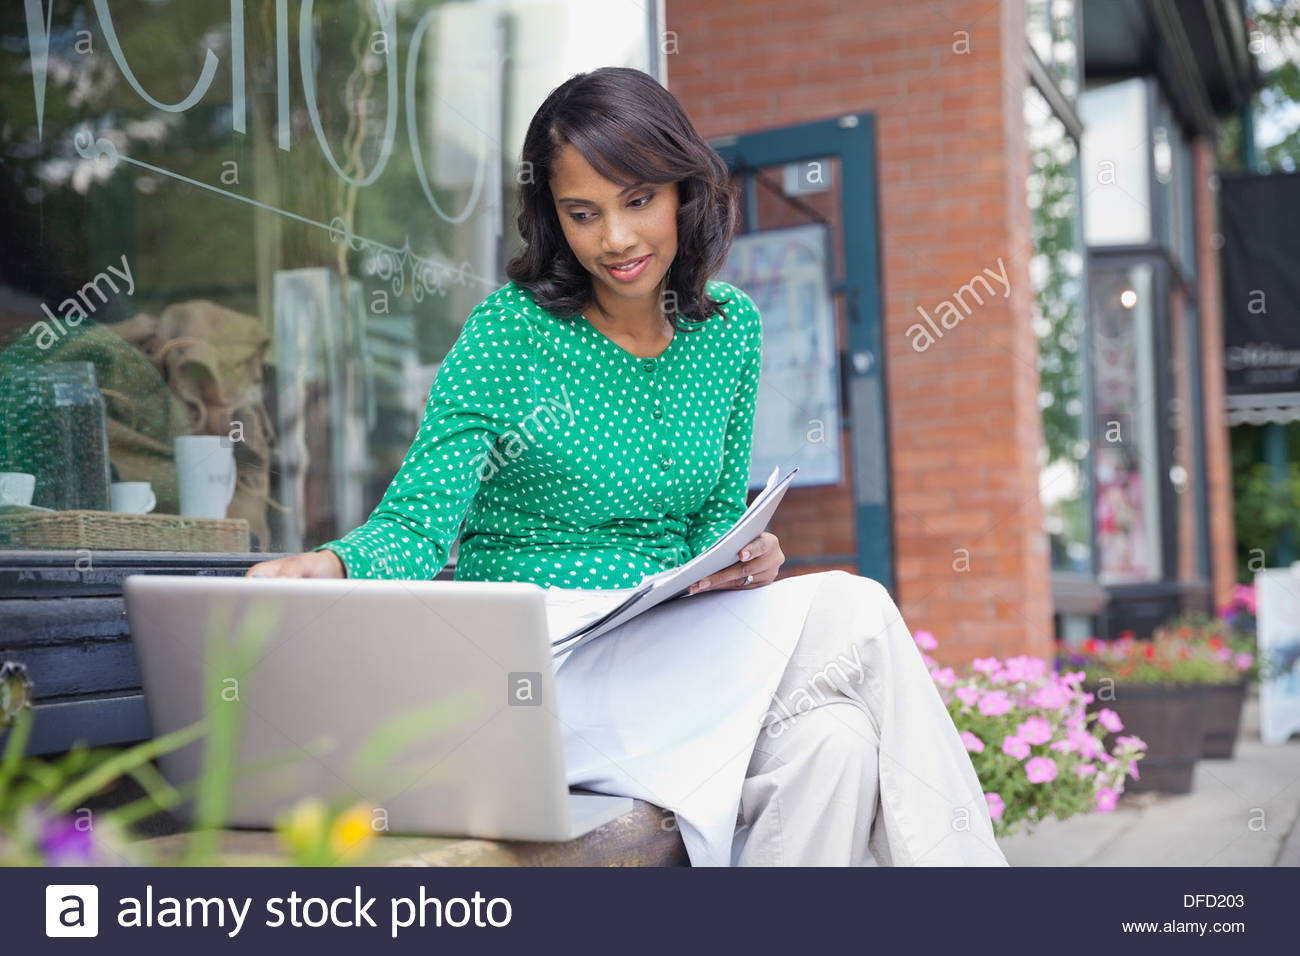 Small business owner working on laptop outside of cafe - Stock Image